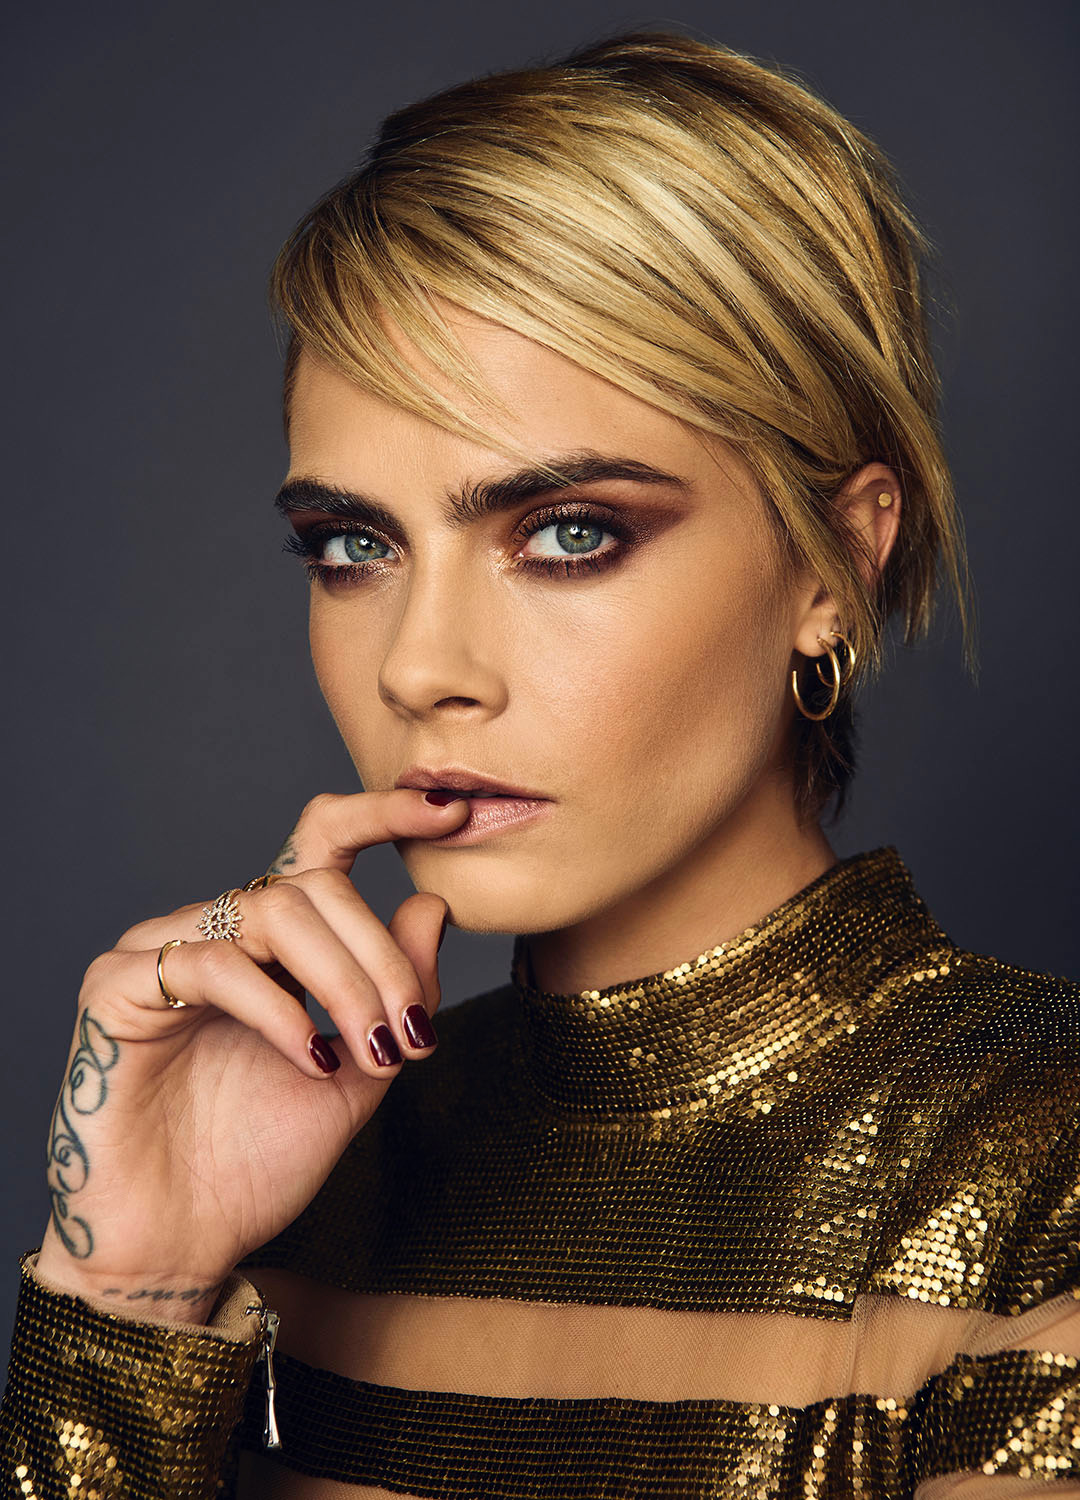 Cara Delevingne Set To Host And Executive Produce An All Female Comedy Series For Quibi Mxdwn Television